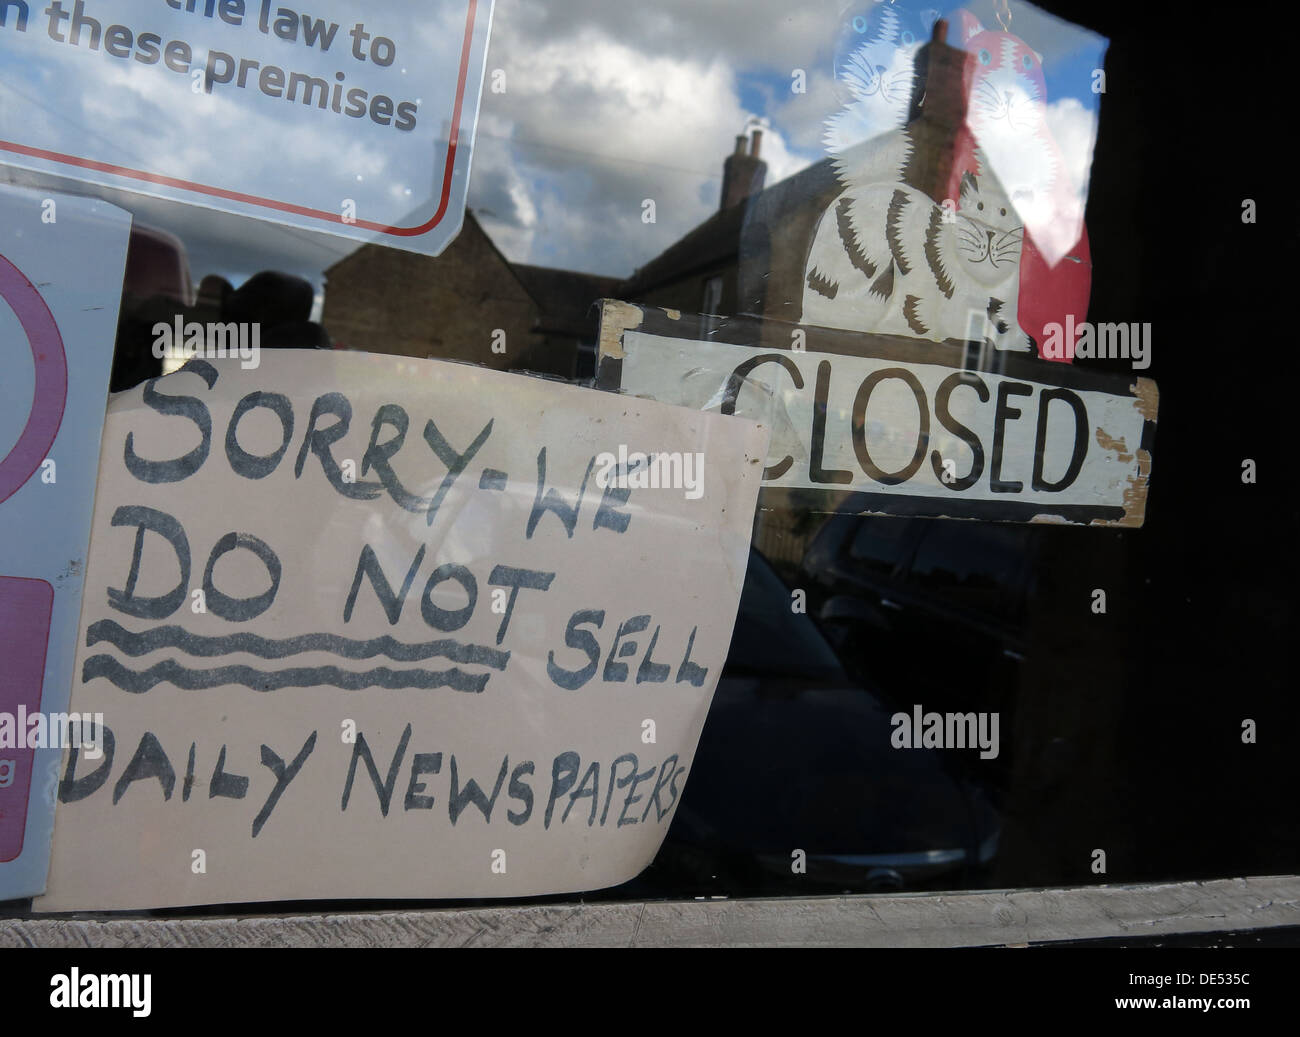 Closed,newsagents,newsagent,in,decline,declining,print,media,dying,trade,shift,to,digital,online,on-line,endangered,species,end,of,newspaper,shop,window,refuse,sale,refused,to,sell,selling,not,Print Media,GoTonySmith,@HotpixUK,Buy Pictures of,Buy Images Of,Images of,Stock Images